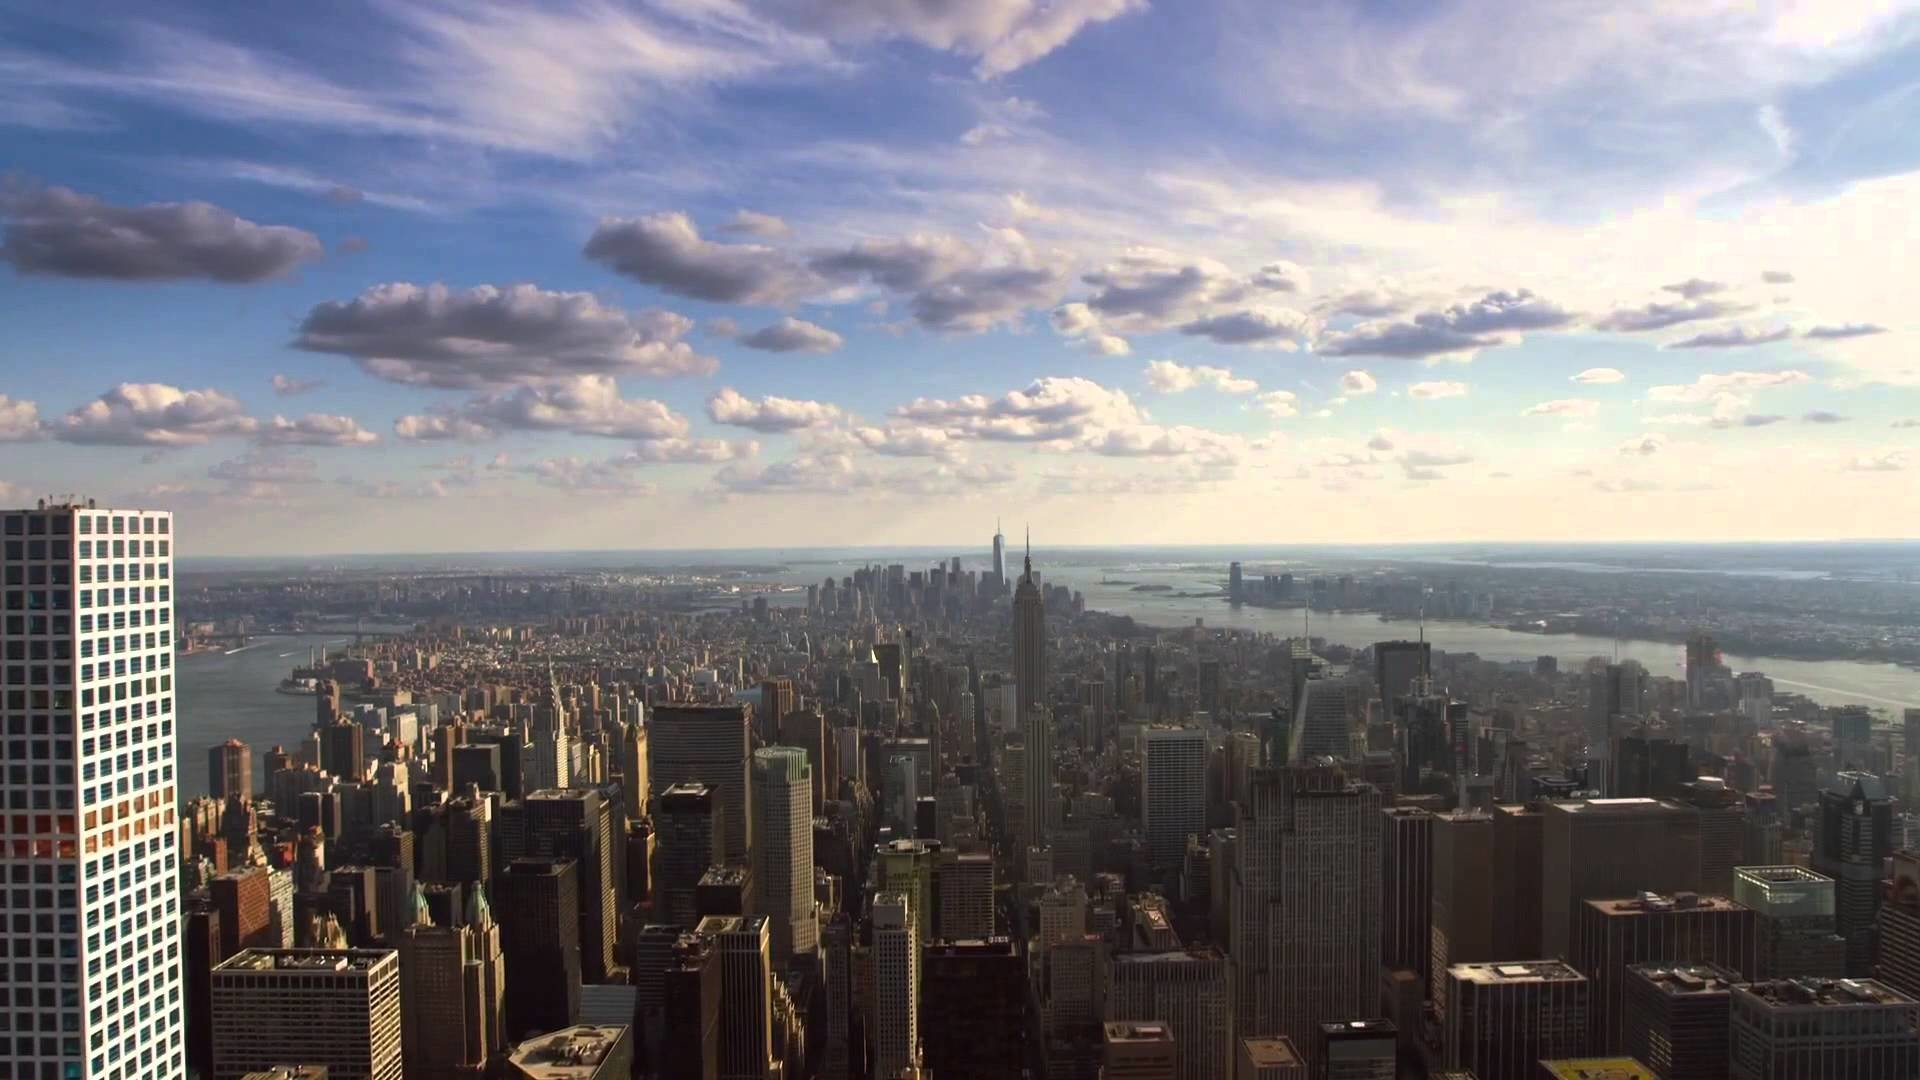 1920x1080 Apple TV 4 Aerial Screensaver - New York City (Day) + Download - YouTube